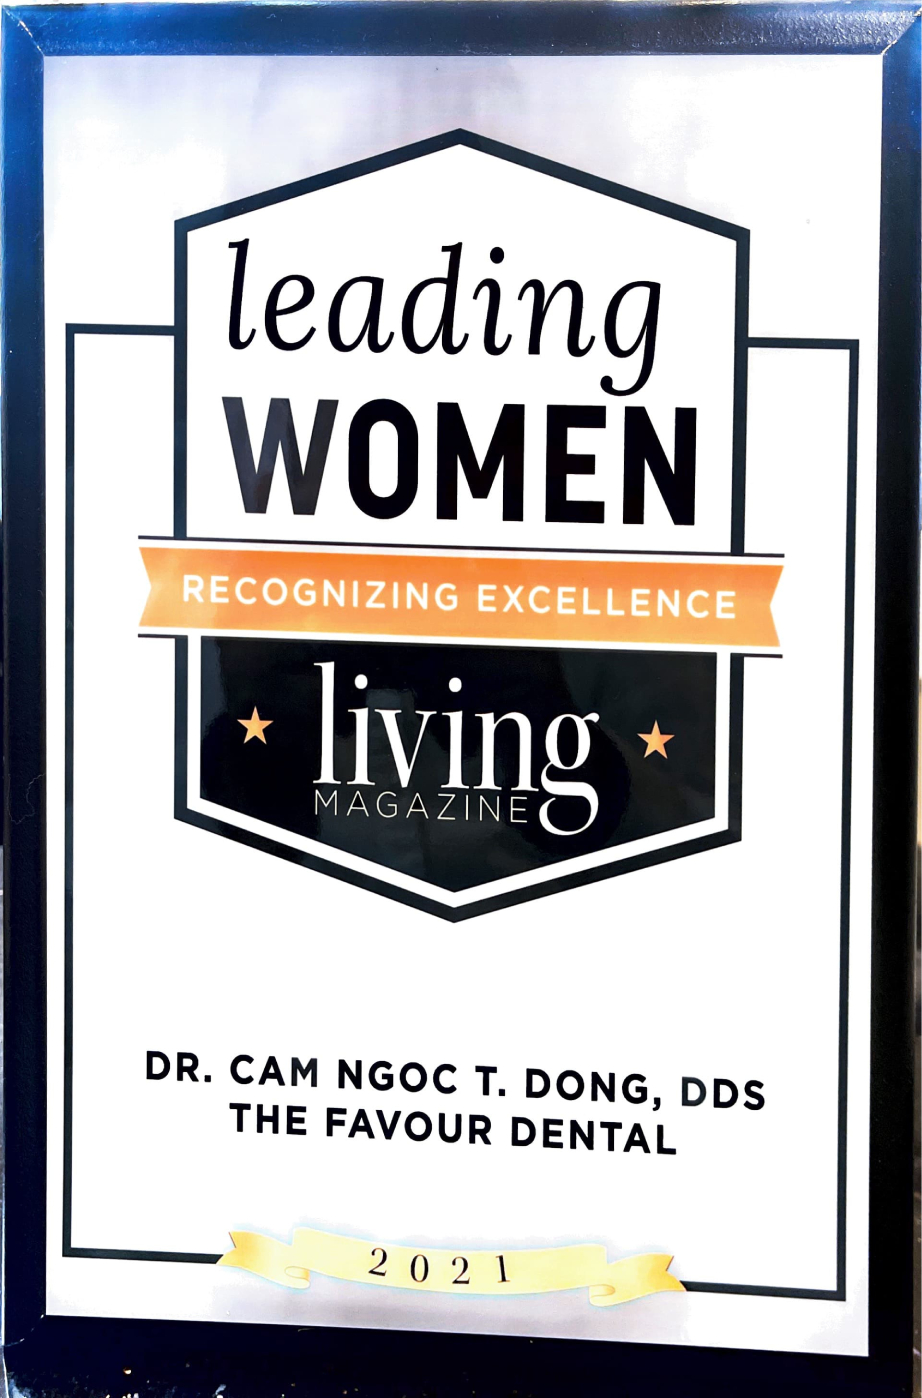 Houston Leading woman dentists - Dr. Cam Ngoc Dong, DDS